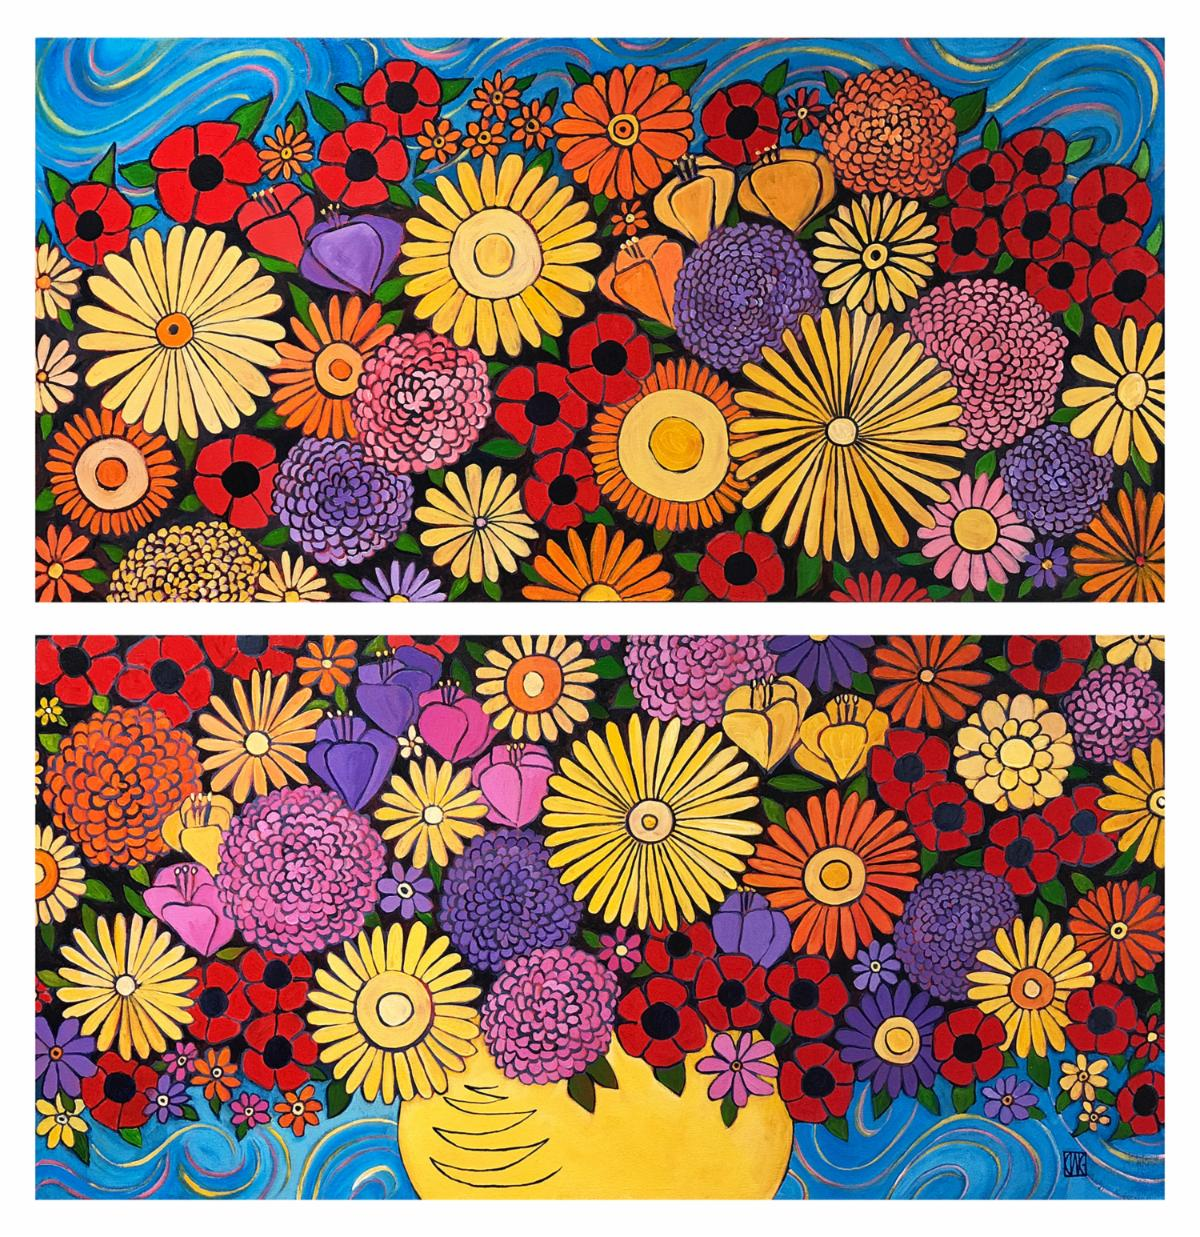 """Tenth Bloom (diptych)"", acrylic painting by Carla W. Gelbaum"